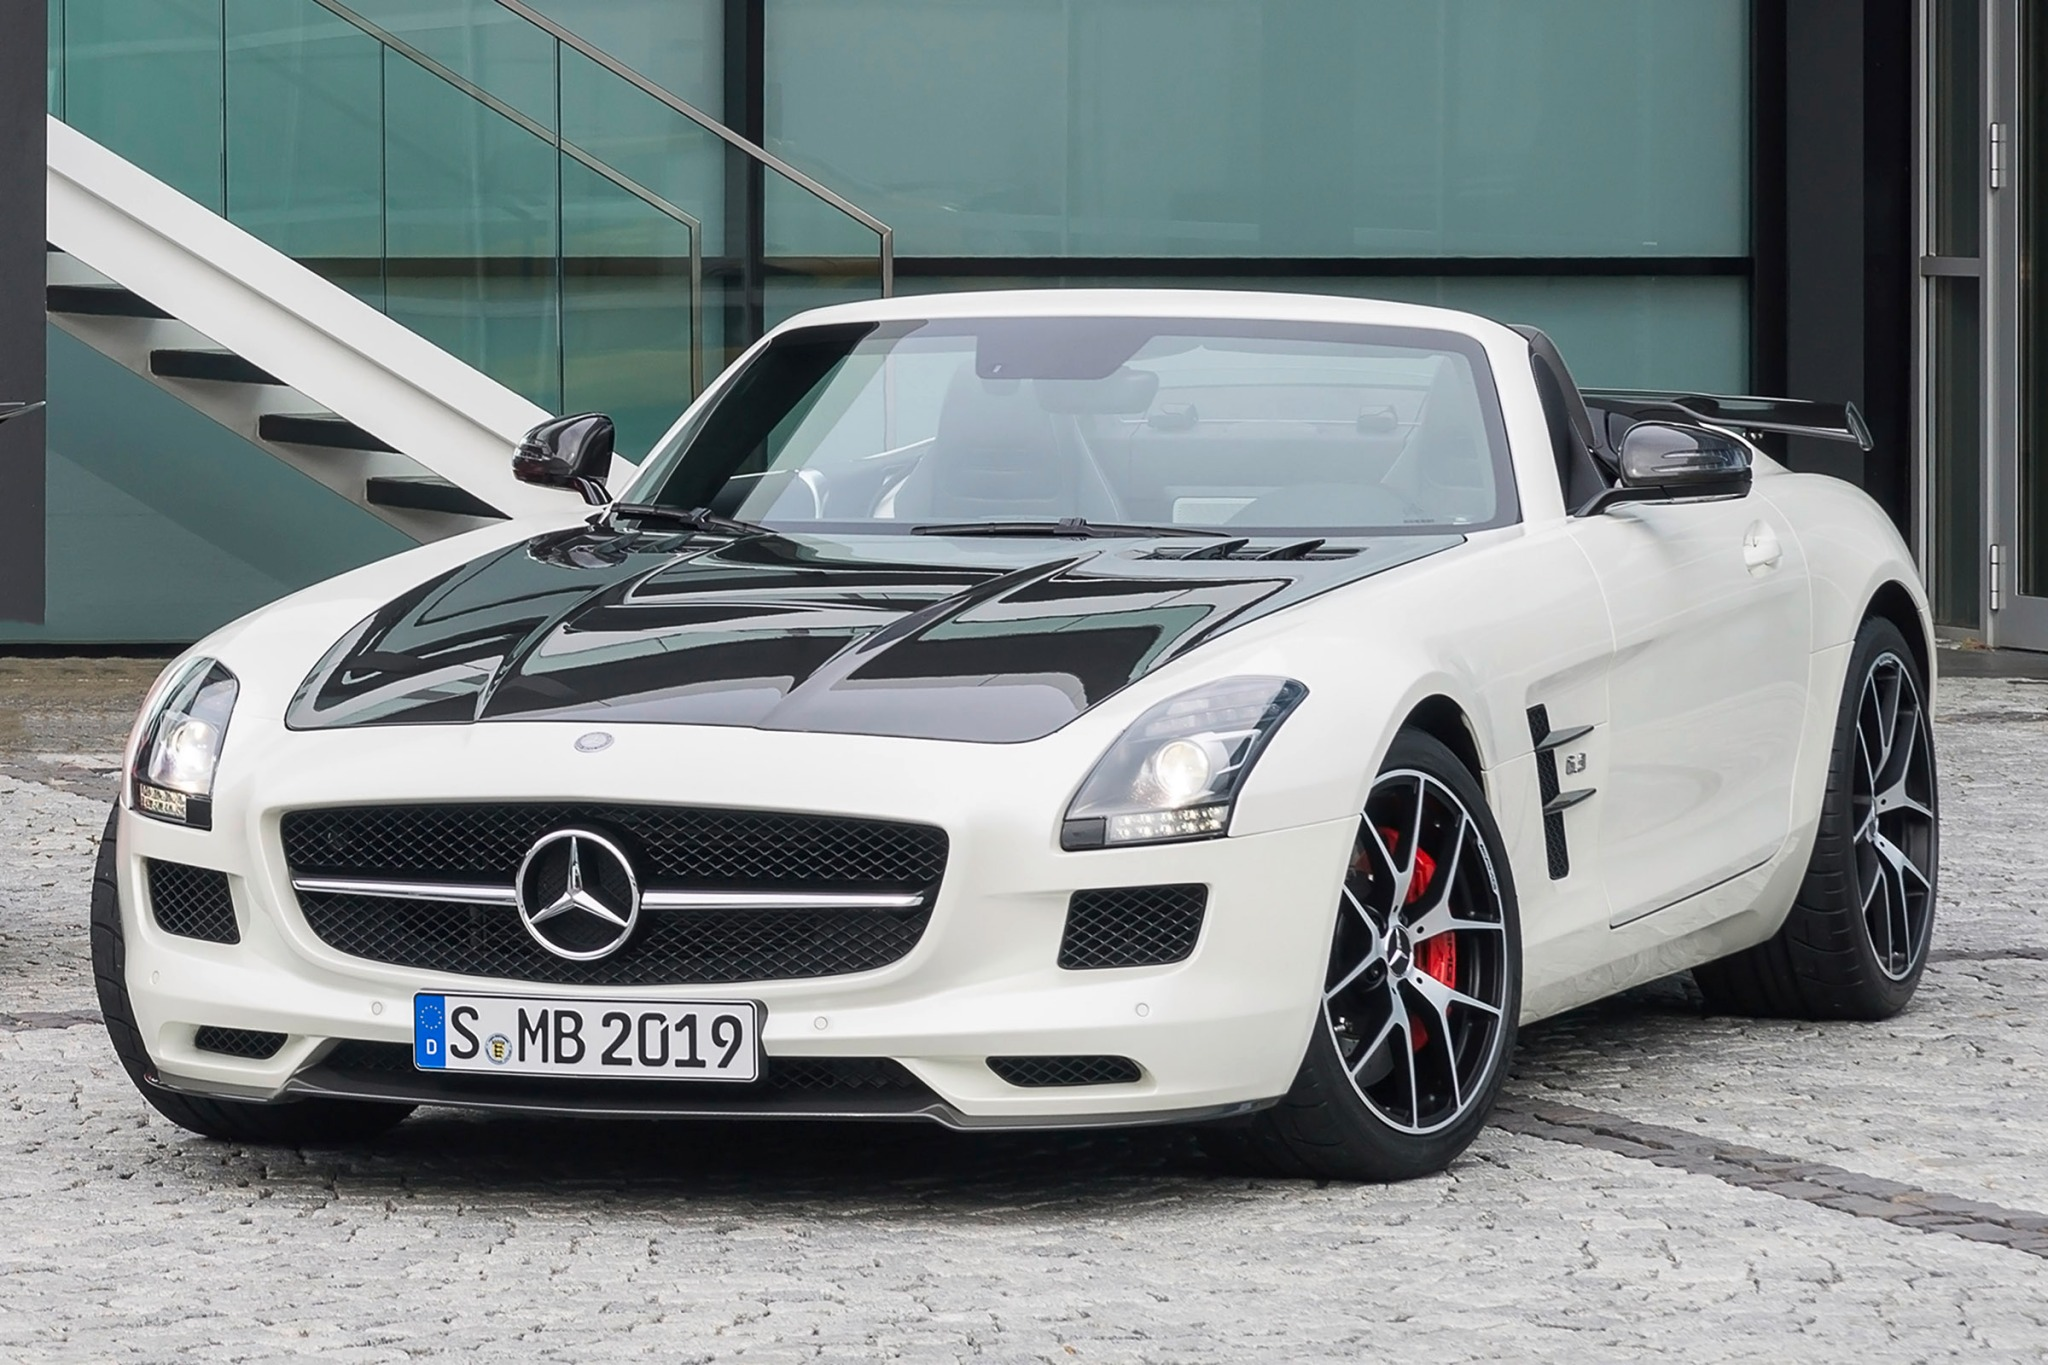 2015 mercedes benz sls amg gt final edition image 4 for 2015 mercedes benz sls amg